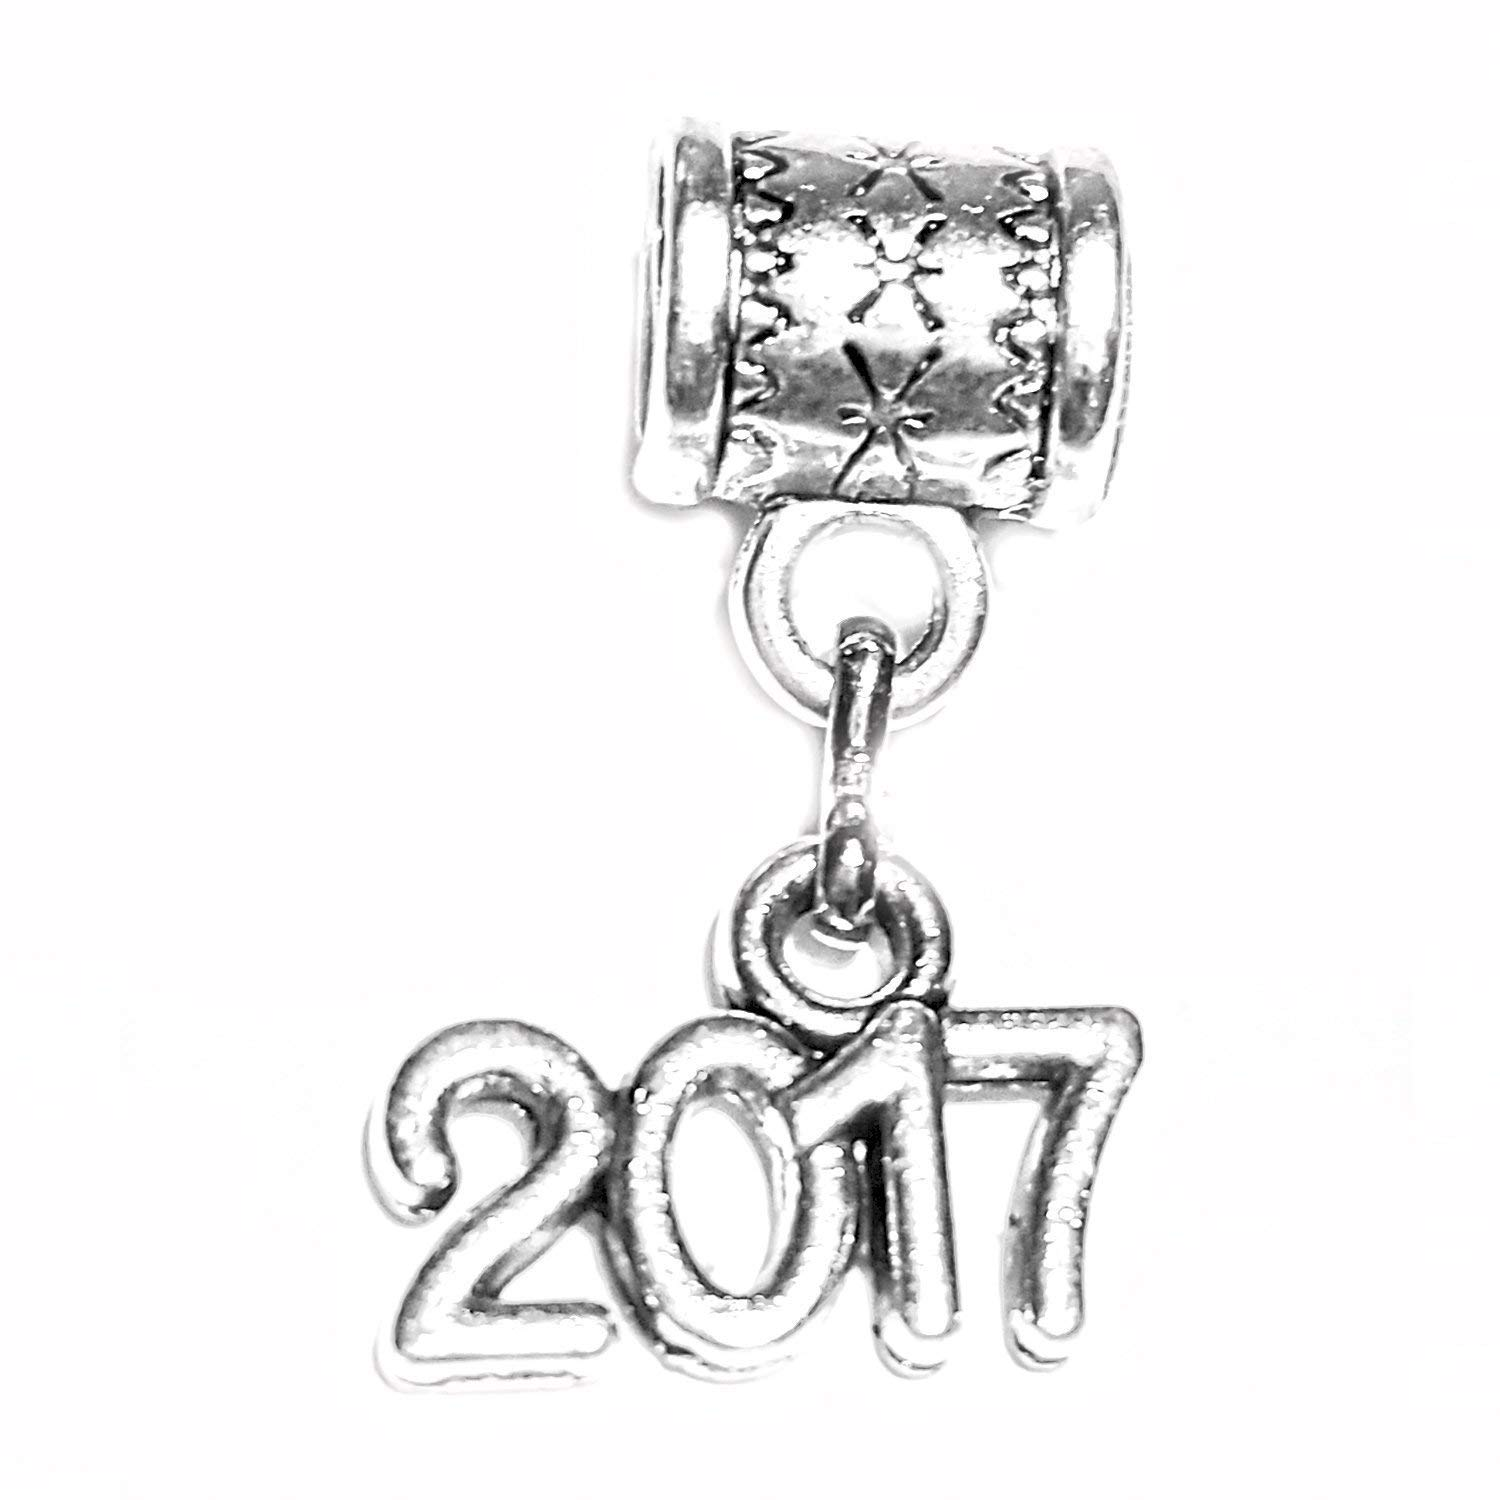 """2017 charm"" is a Tibetan Silver hanging charm by Mossy Cabin for modern style snake chain bracelet, or add to a neck chain, pendant necklace or key chain"